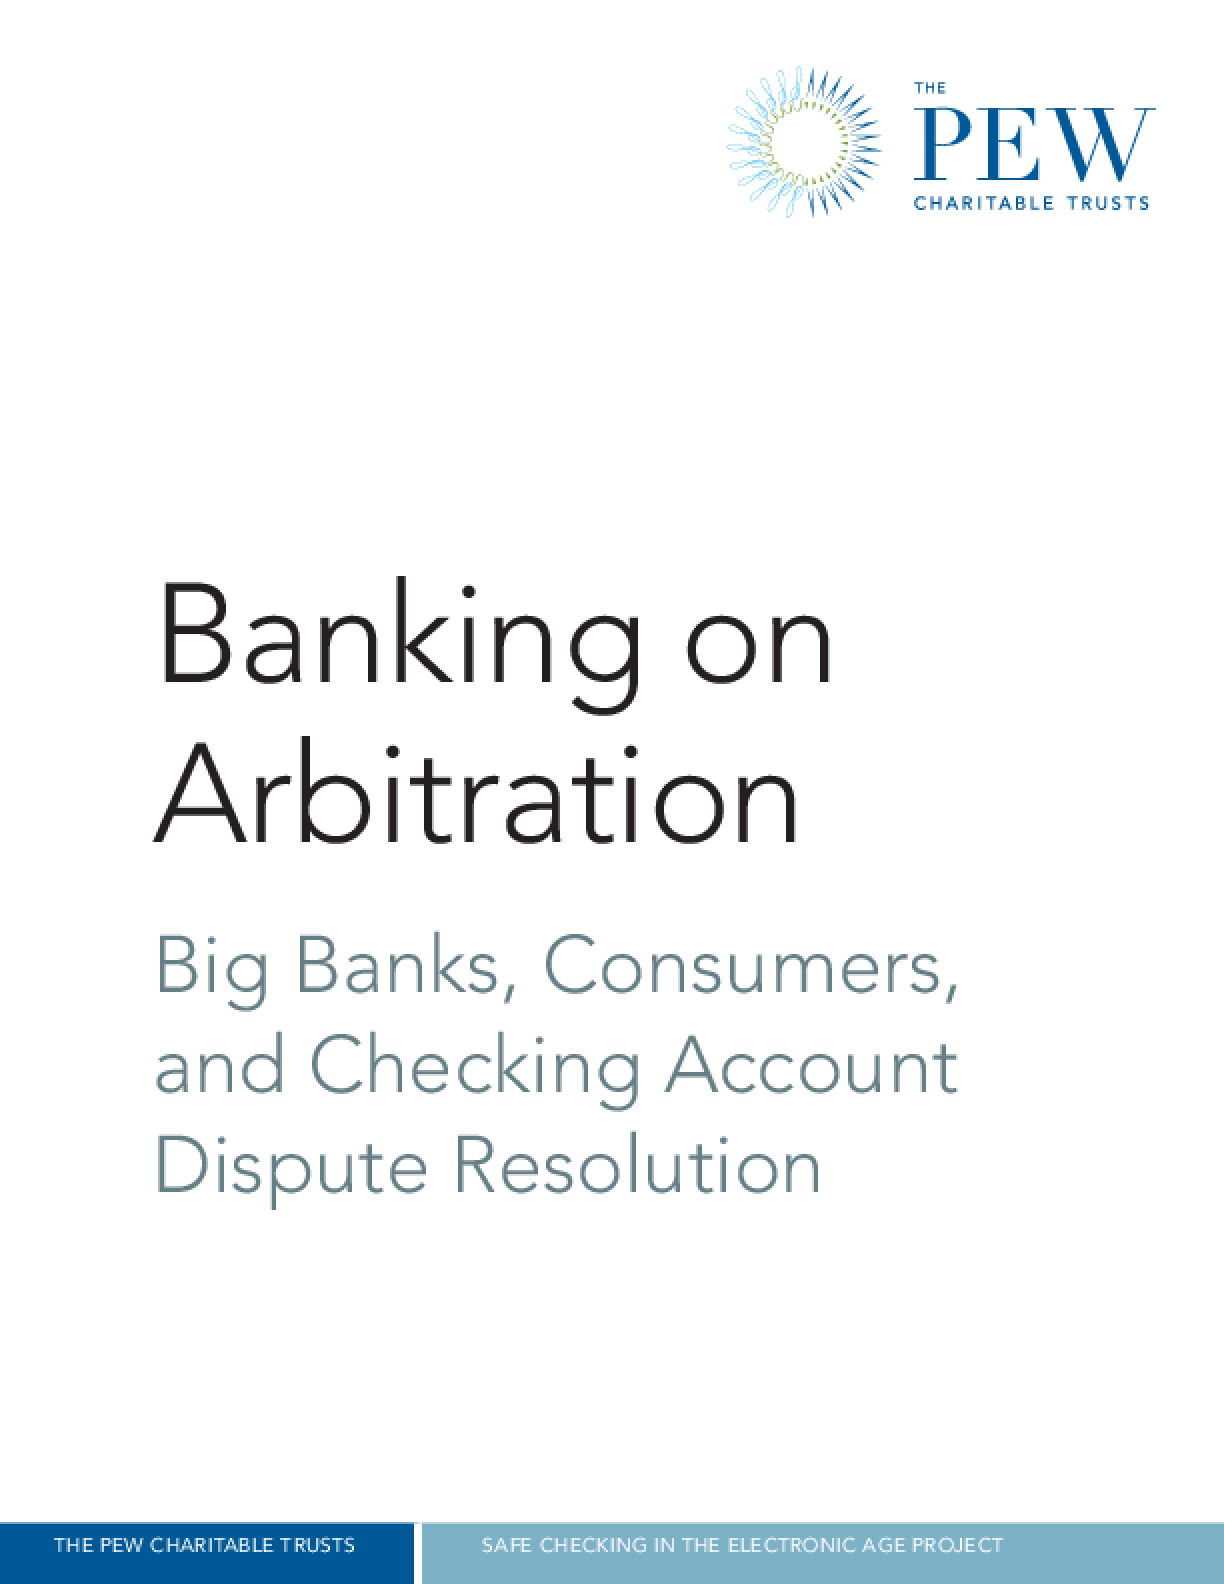 Banking on Arbitration: Big Banks, Consumers, and Checking Account Dispute Resolution